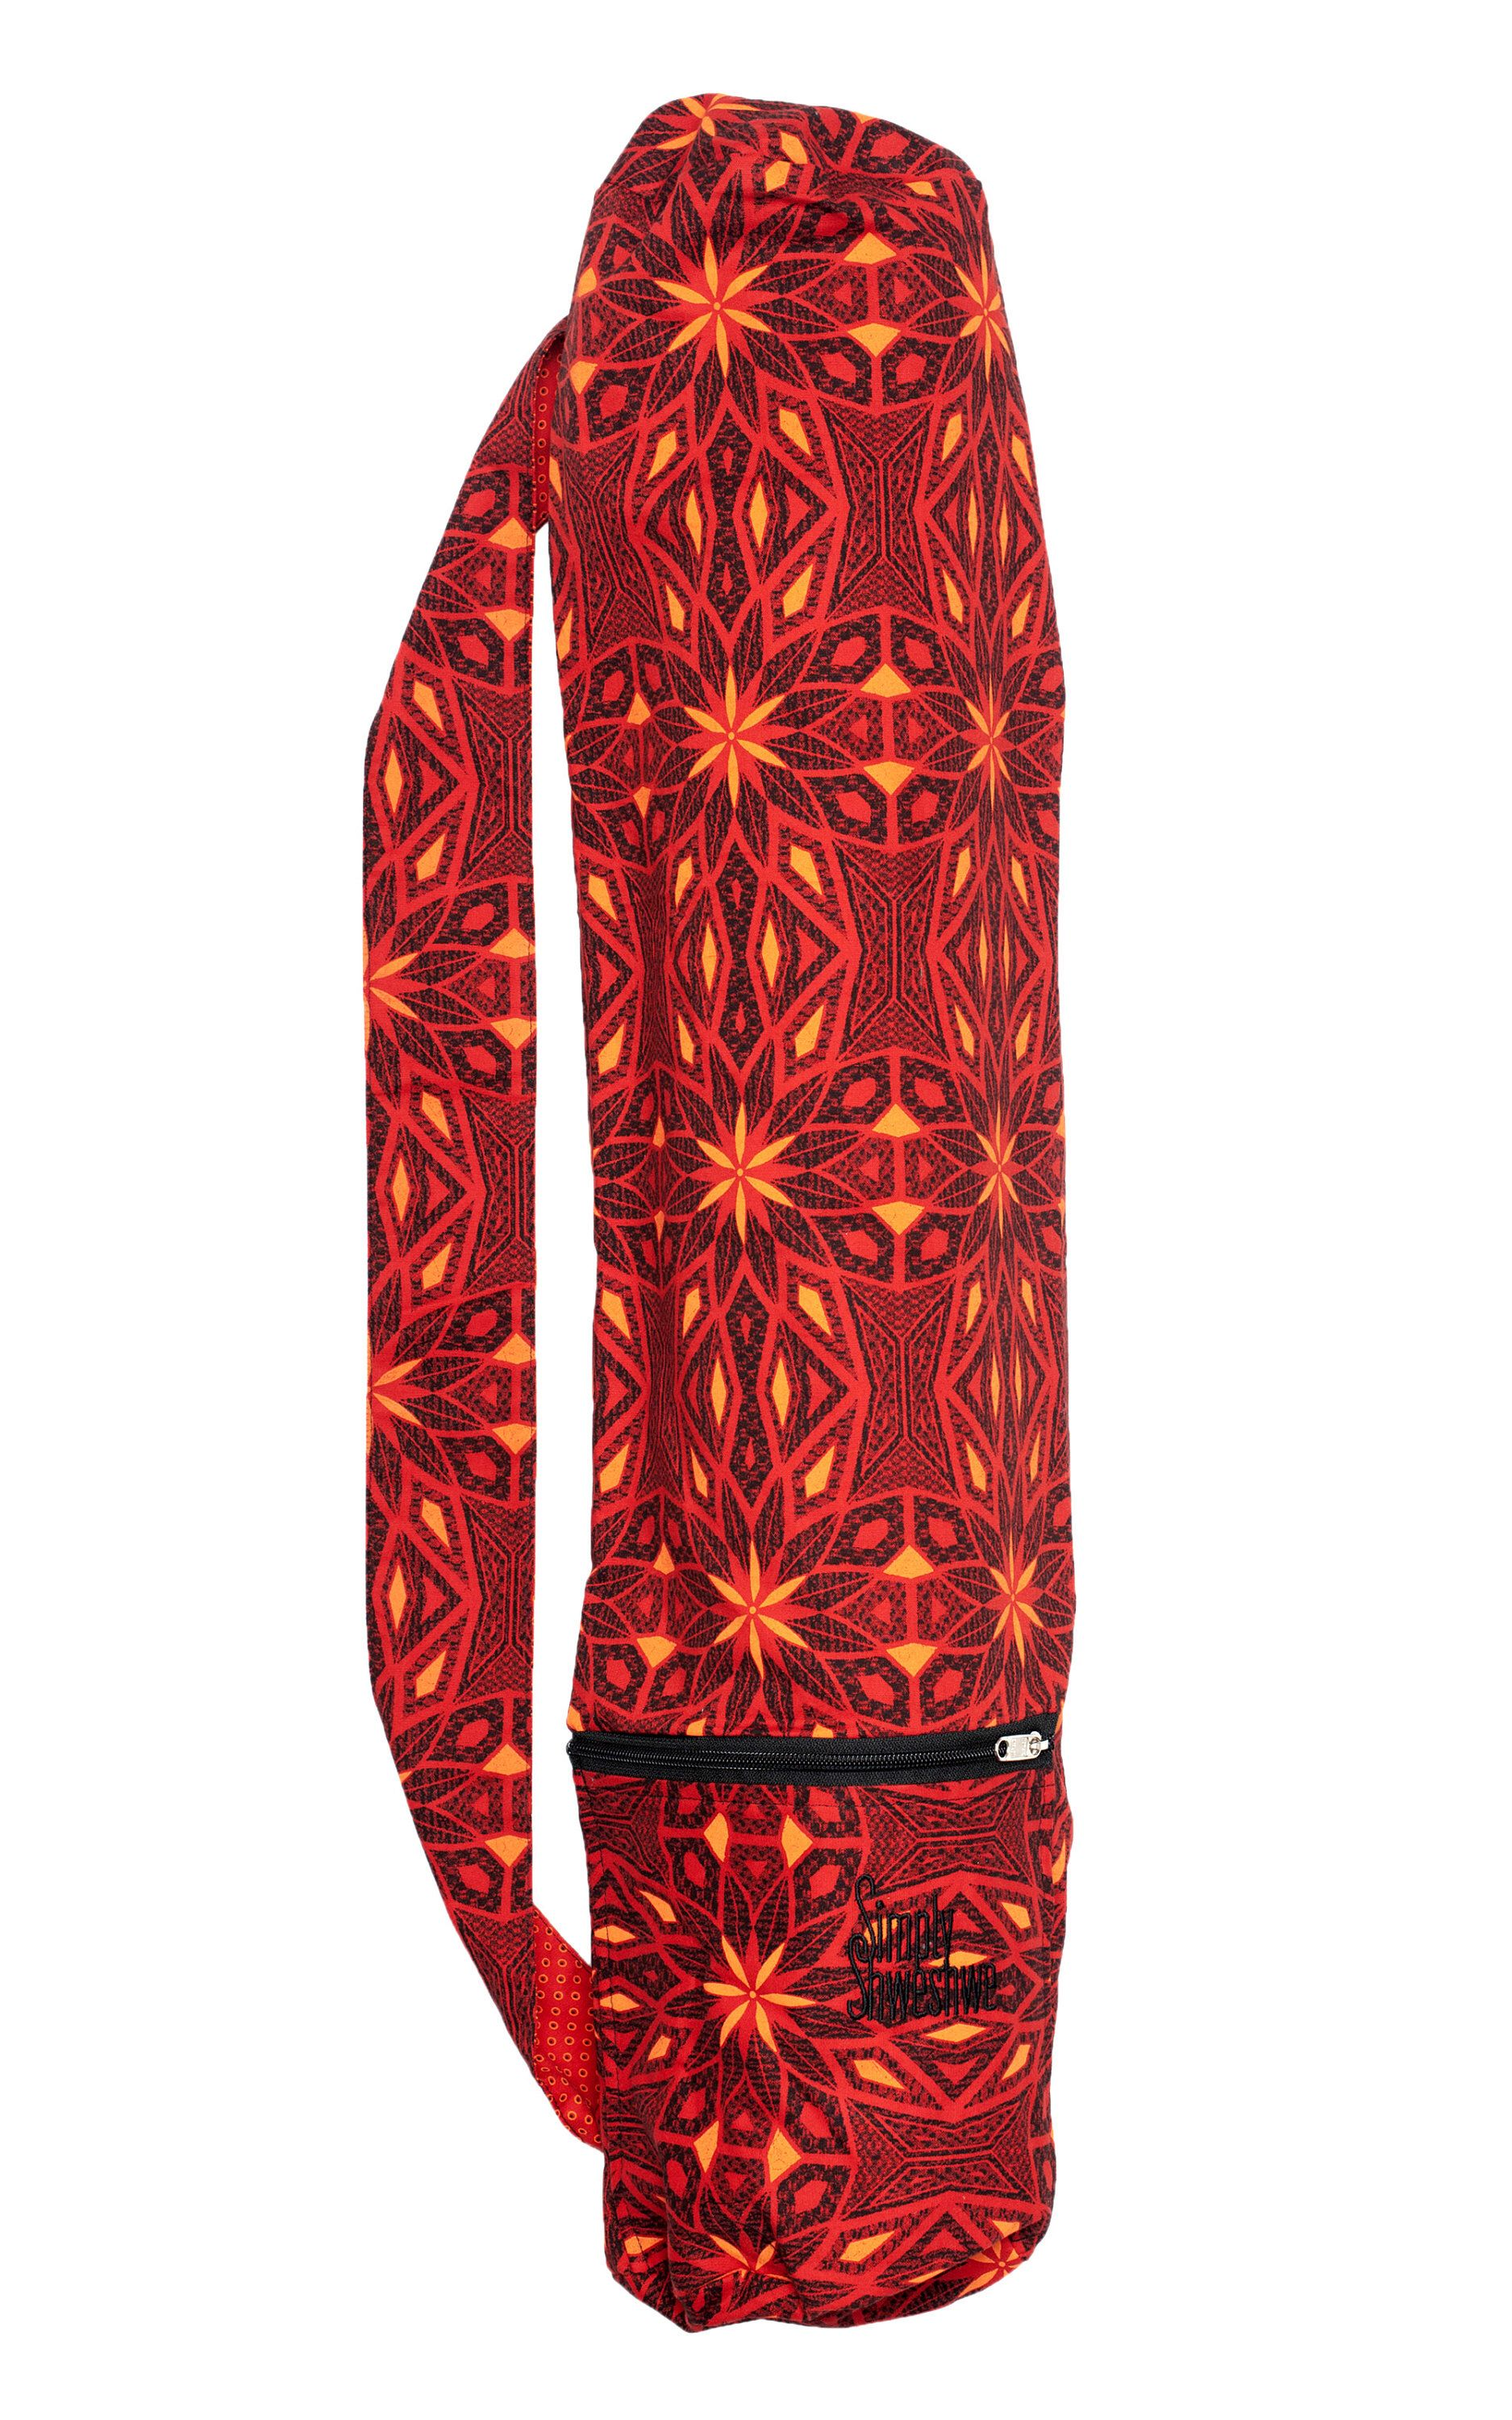 Excited to share the latest addition to my  etsy shop  Red Yoga Mat Bag f5adc8ad10ff4